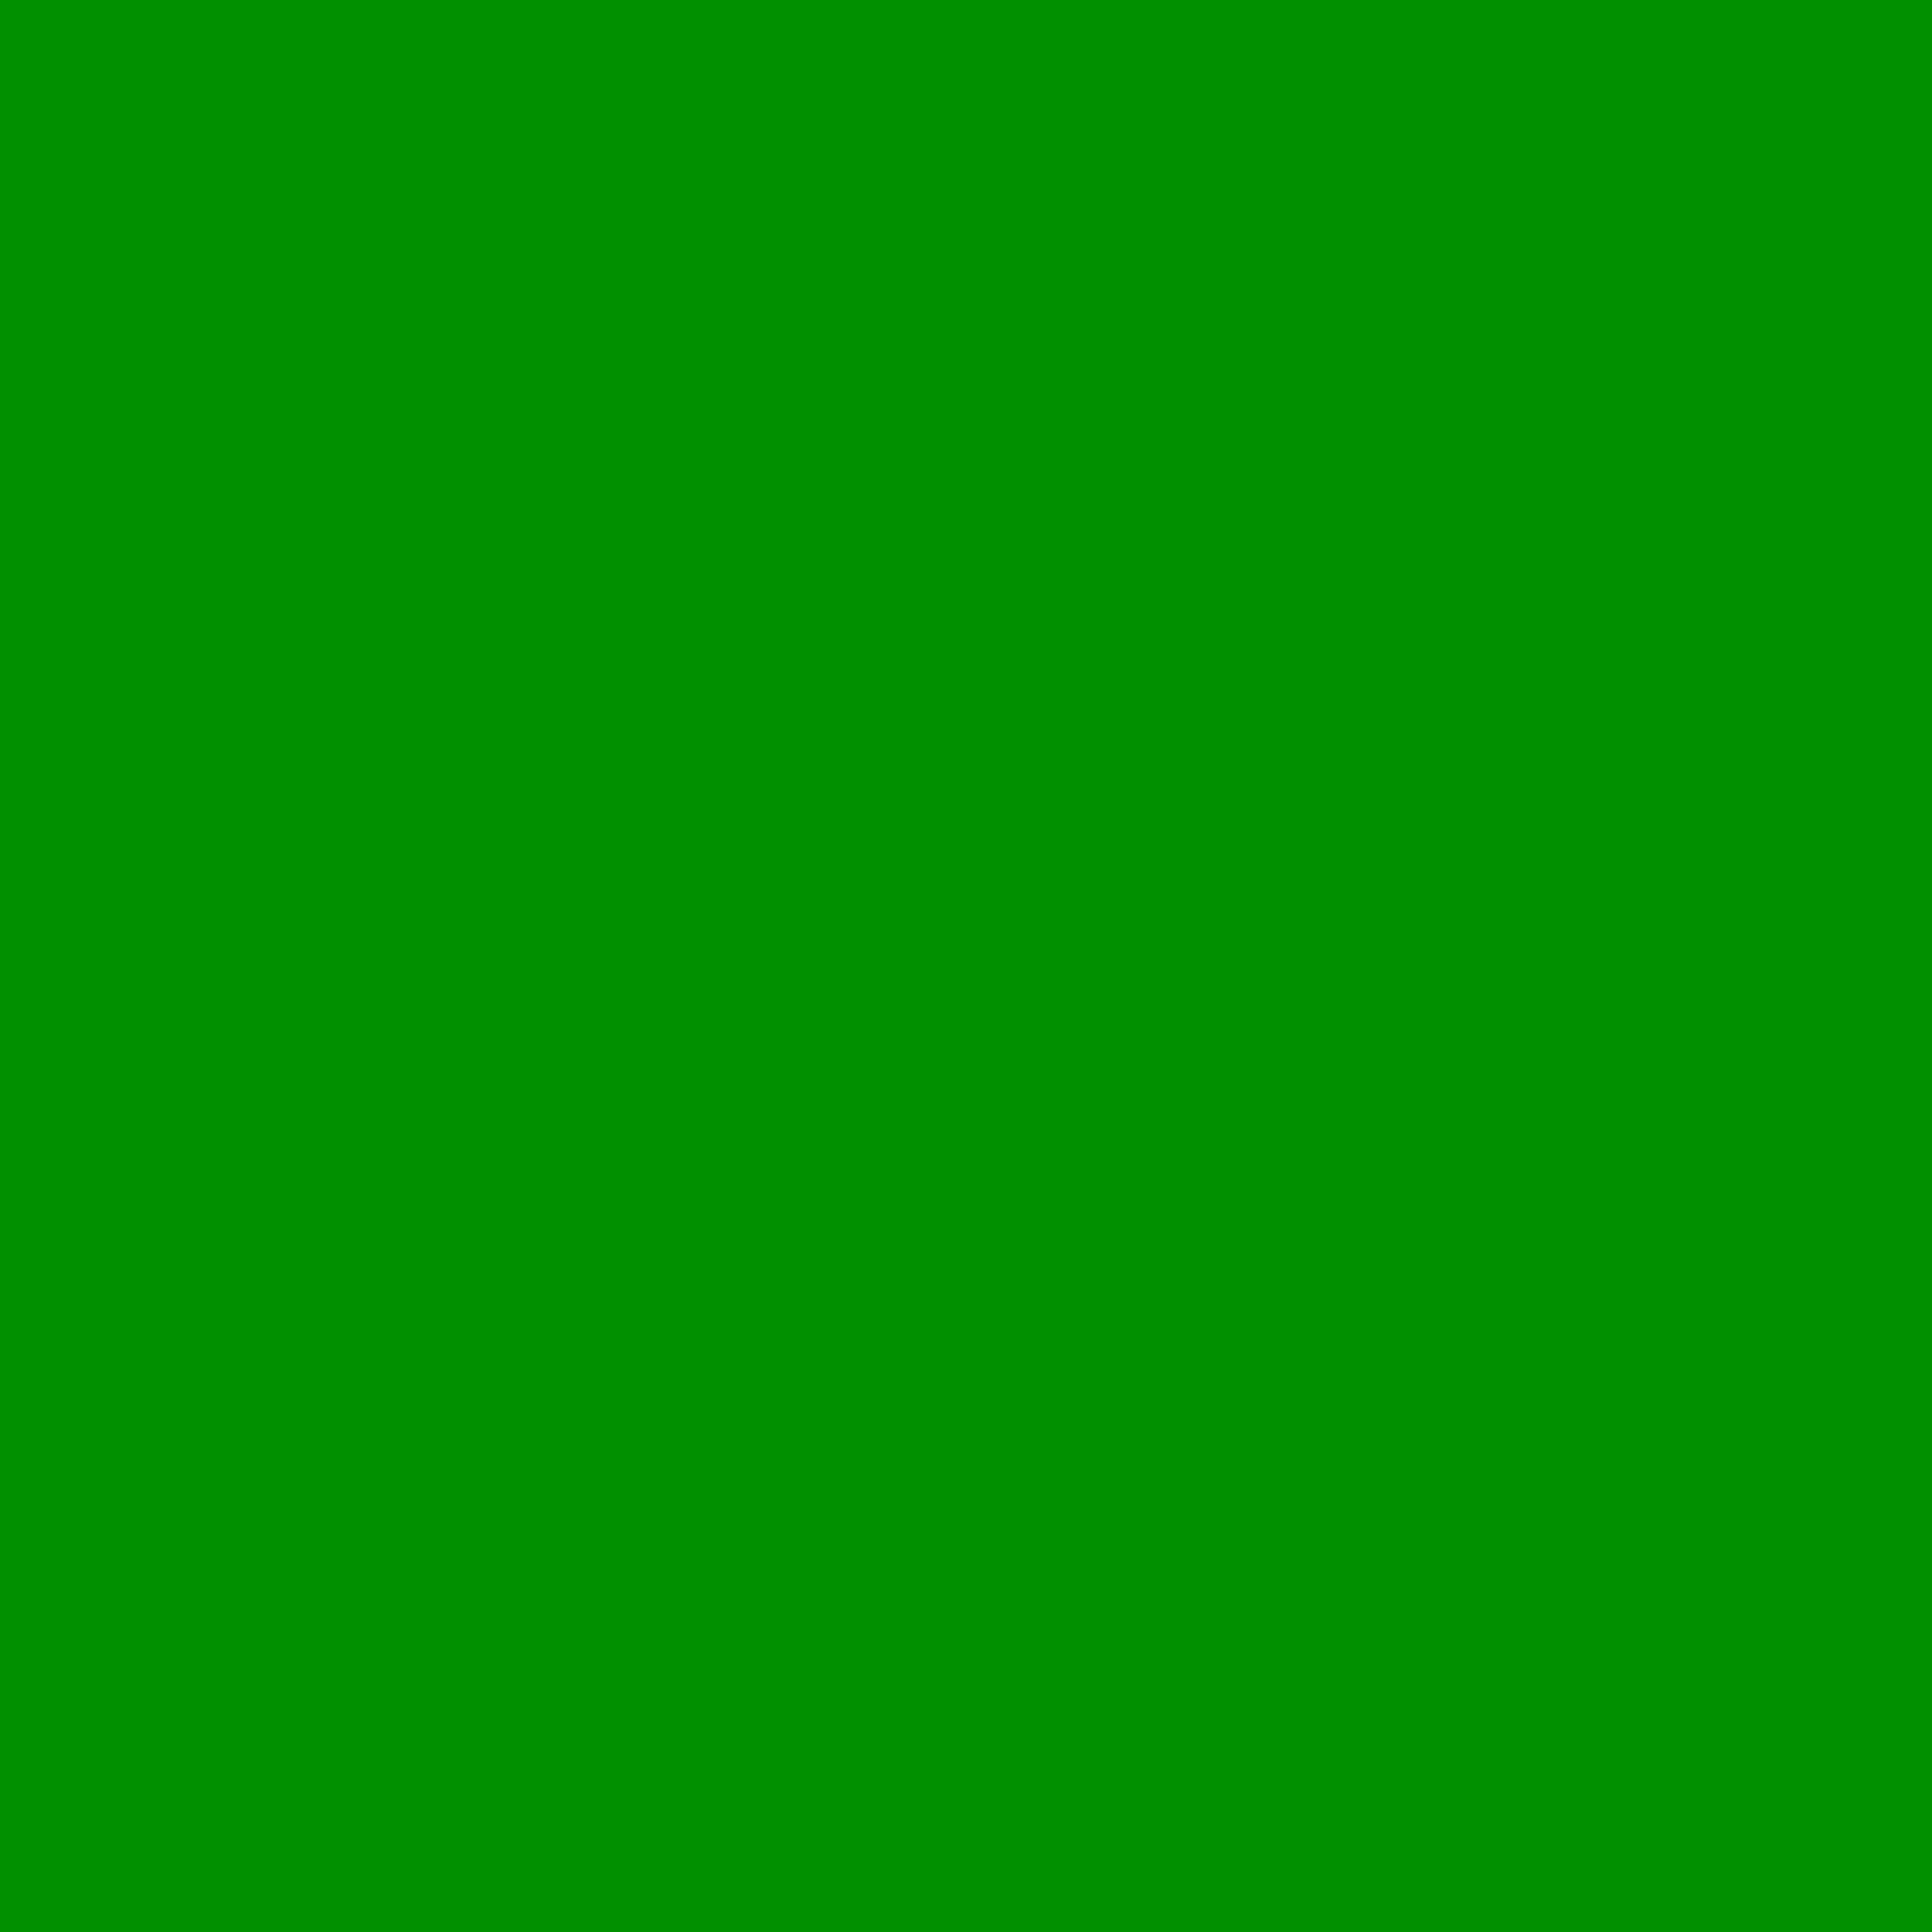 3600x3600 Islamic Green Solid Color Background